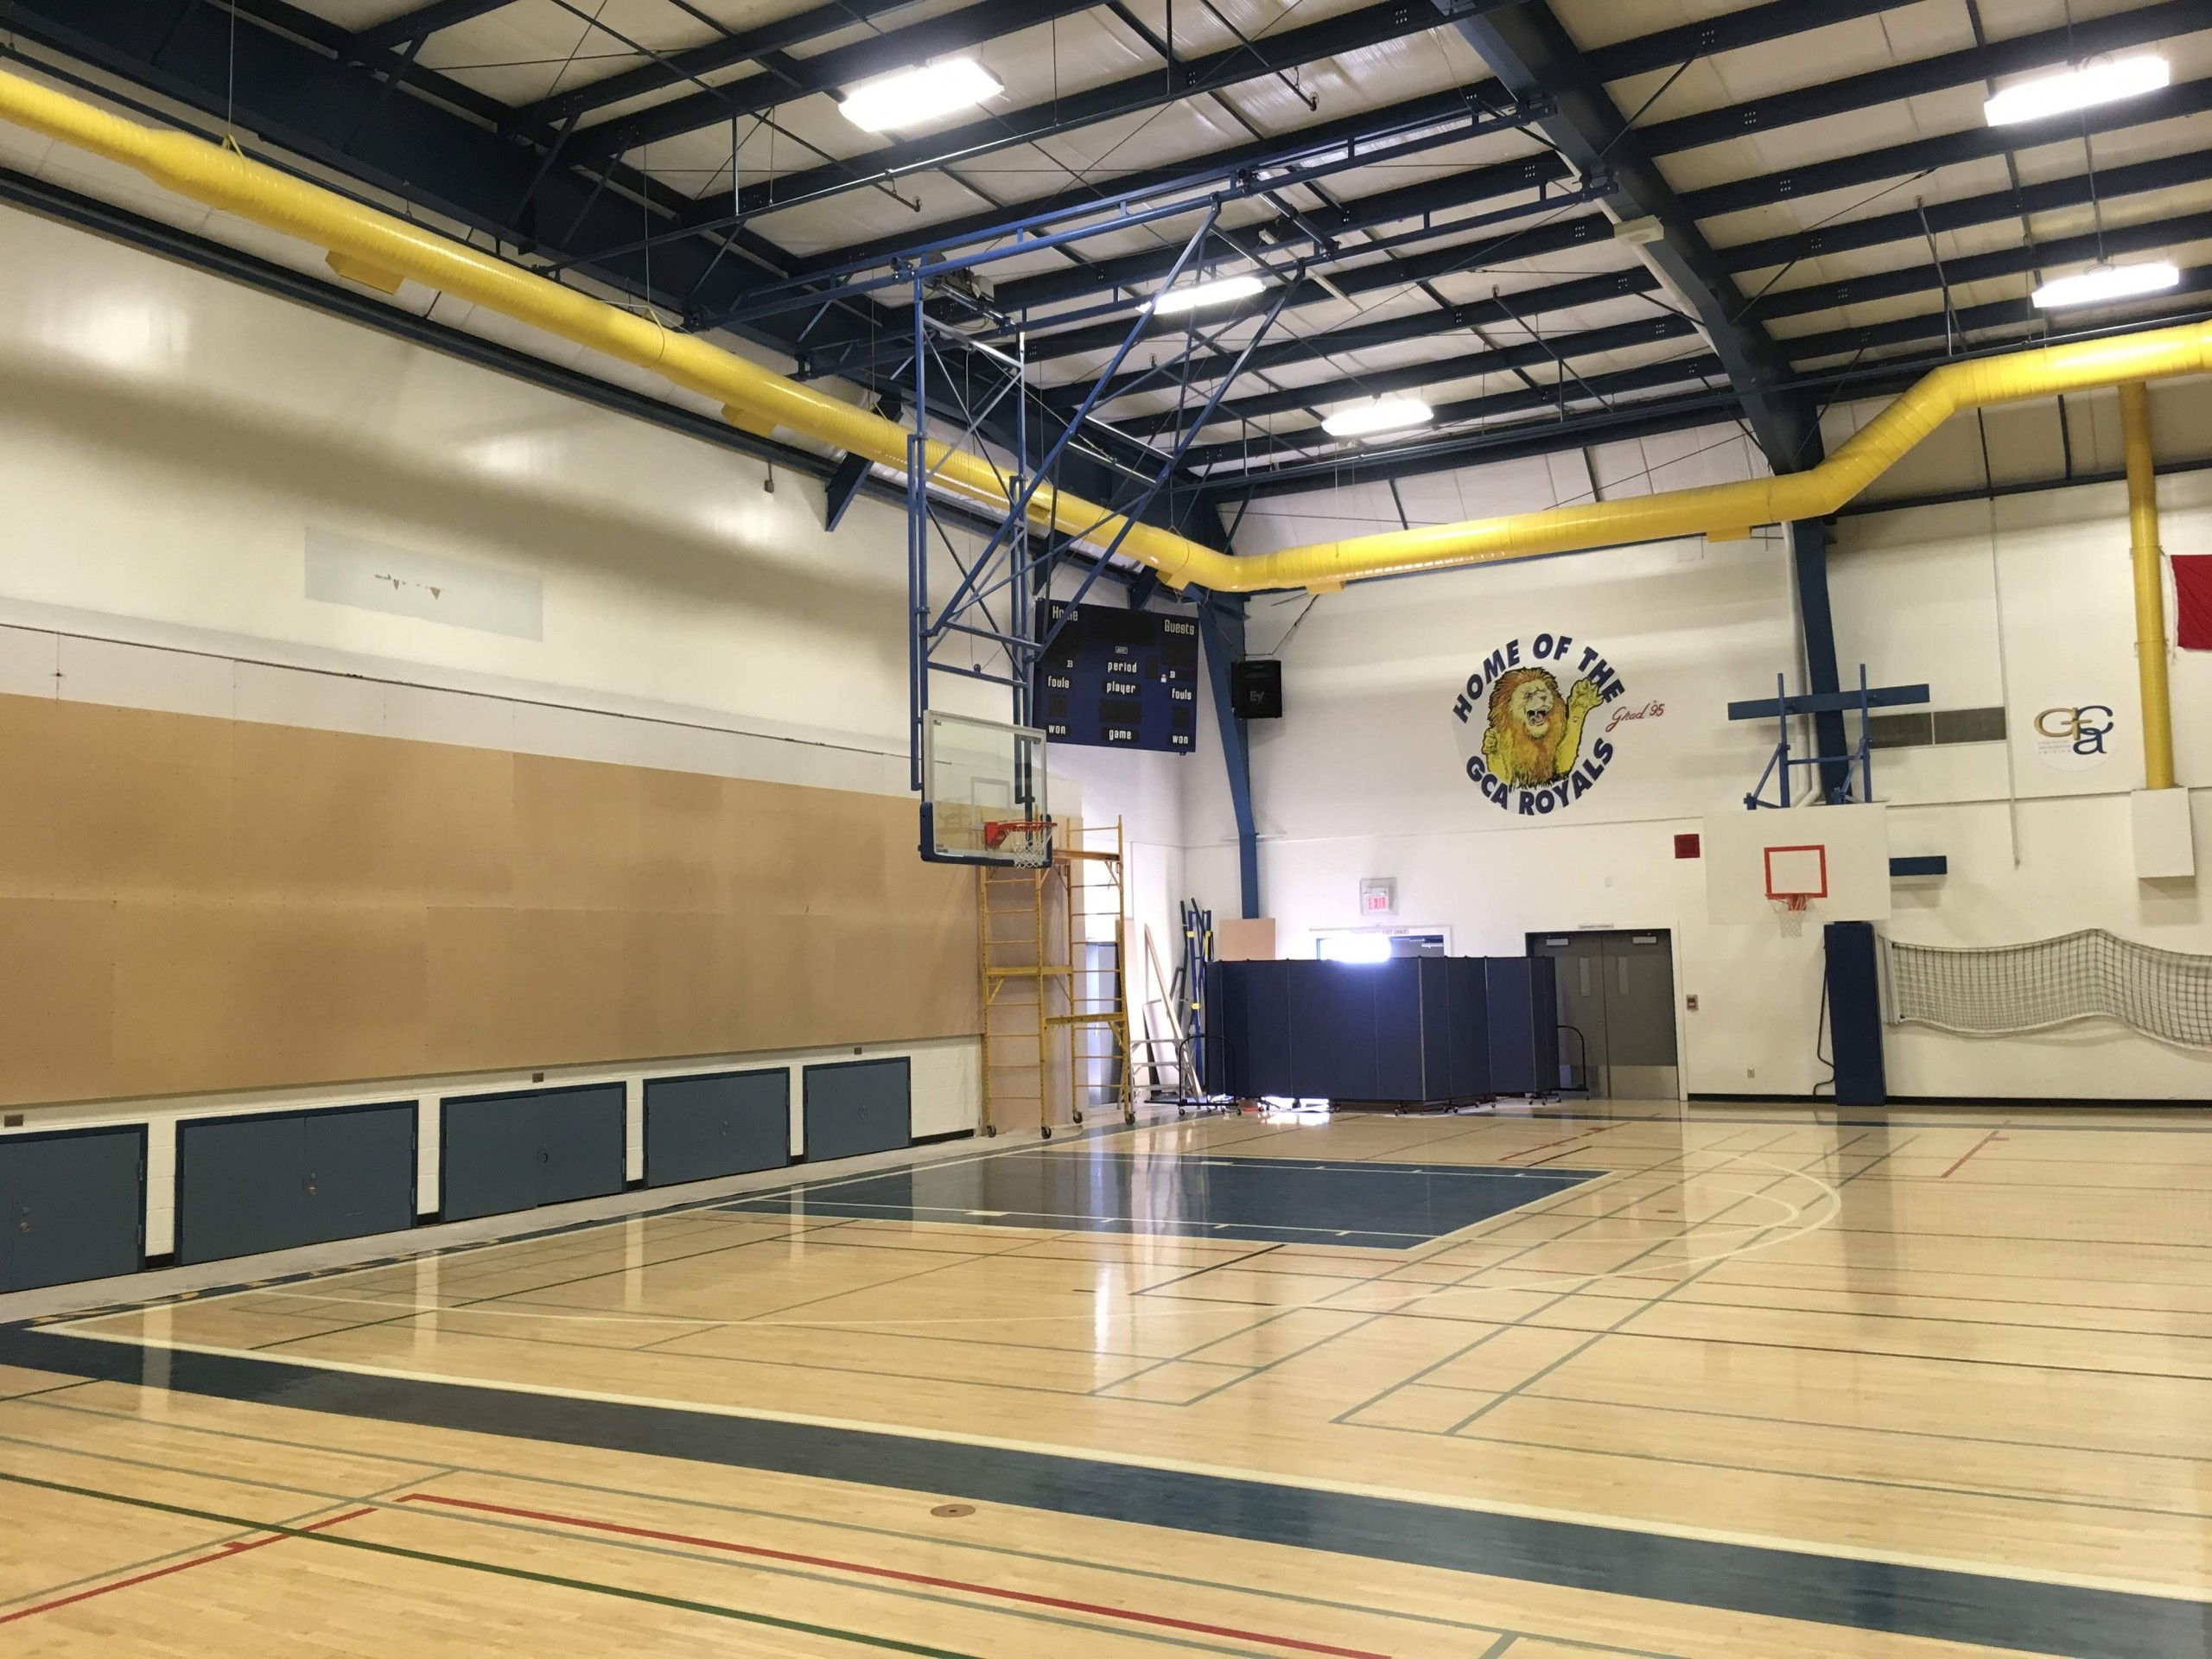 Interior photo of existing gymnasium with enclosed stage area on the left and open steel structure above.